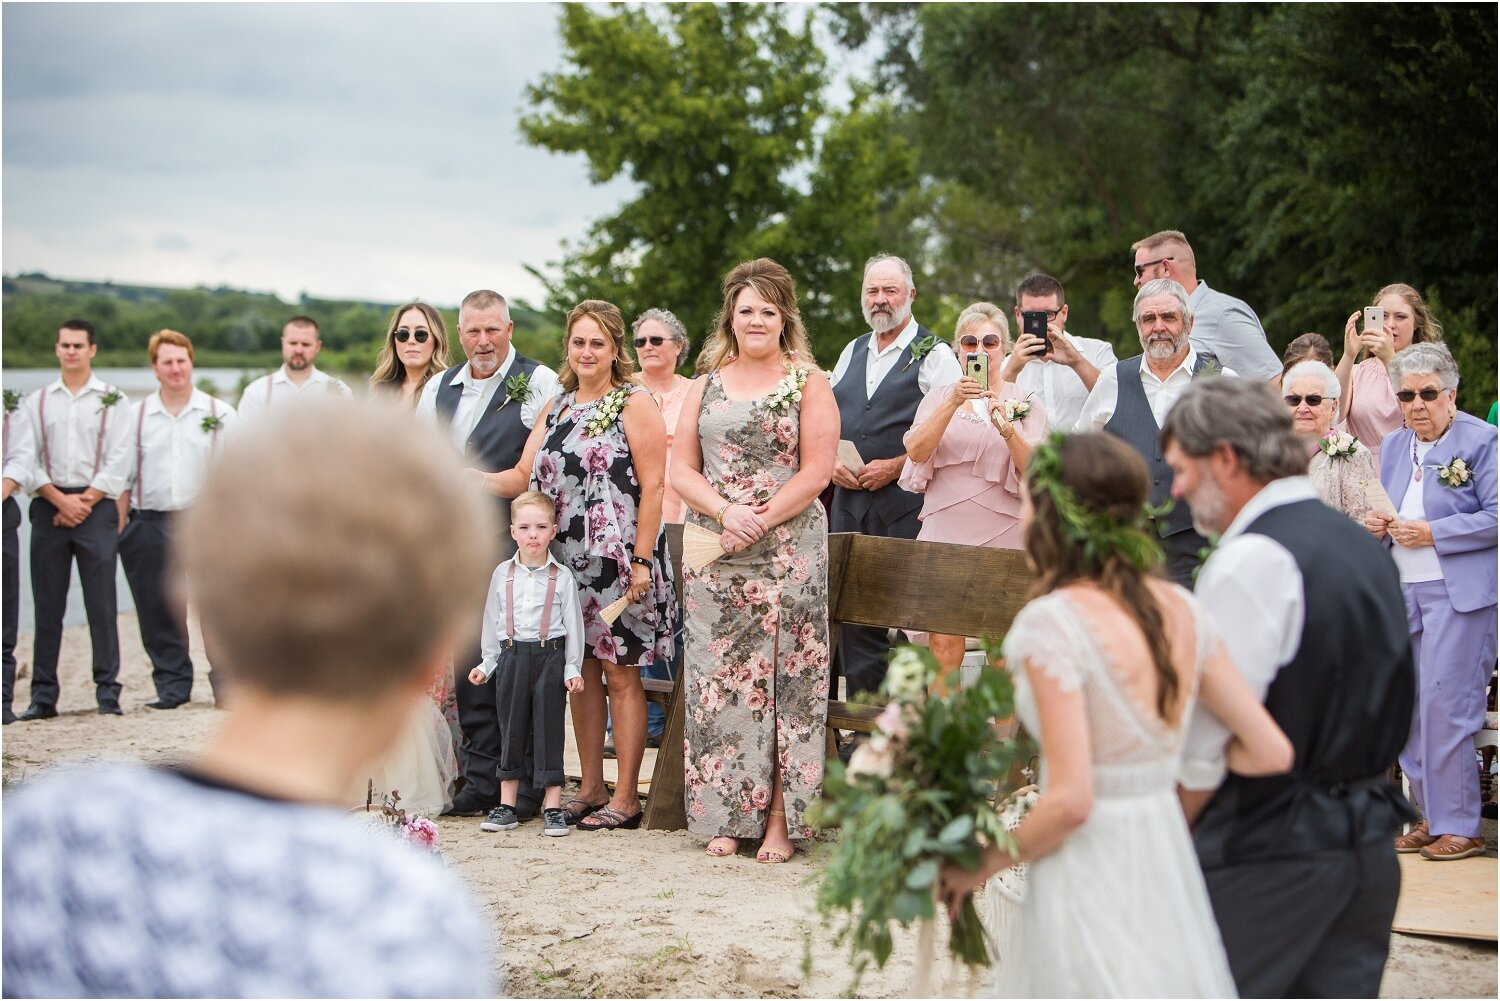 central_nebraska_wedding_2017.jpg